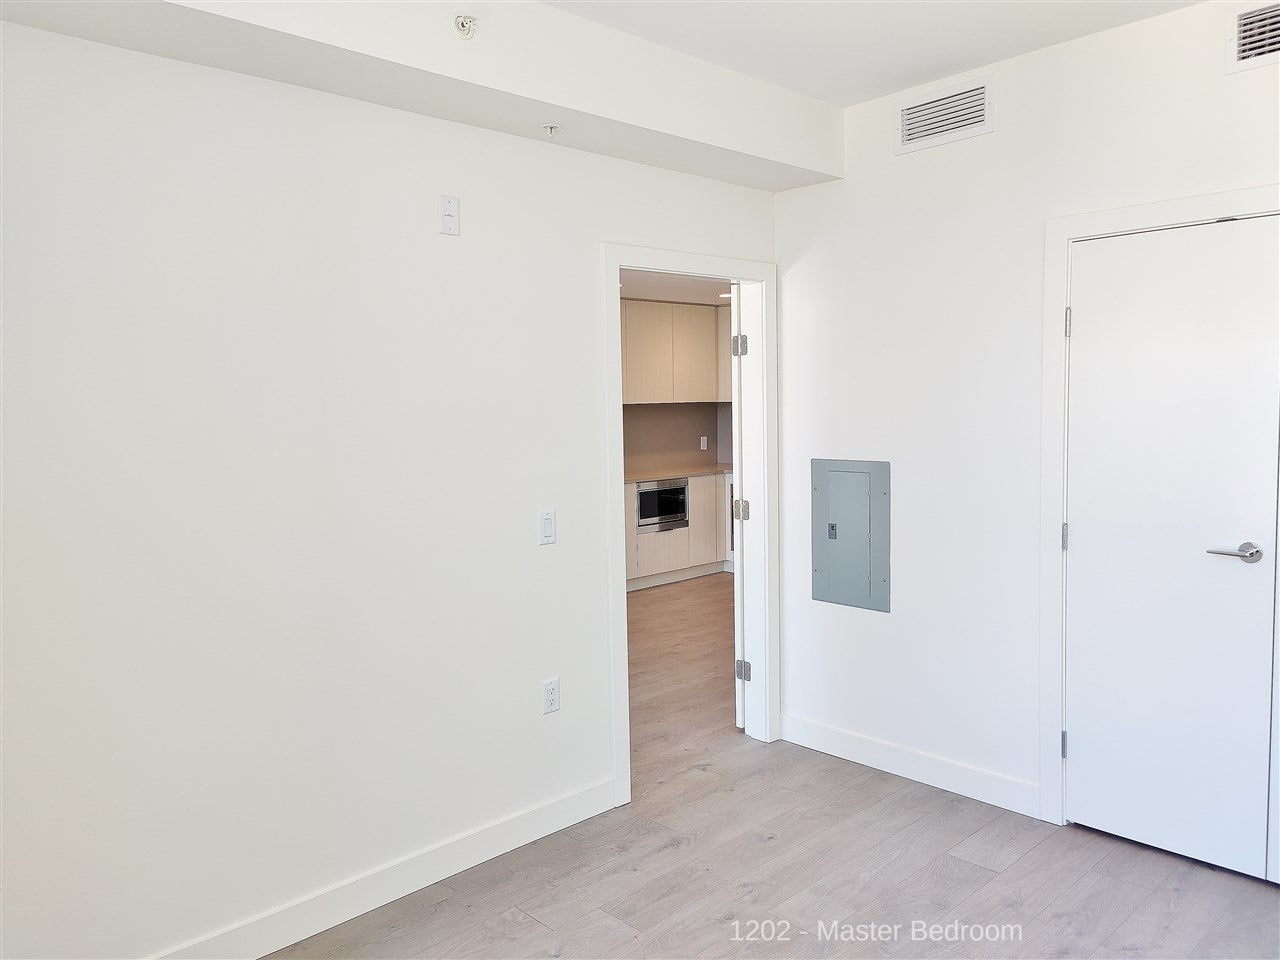 1202 4465 JUNEAU STREET - Brentwood Park Apartment/Condo for sale, 1 Bedroom (R2470011) - #30